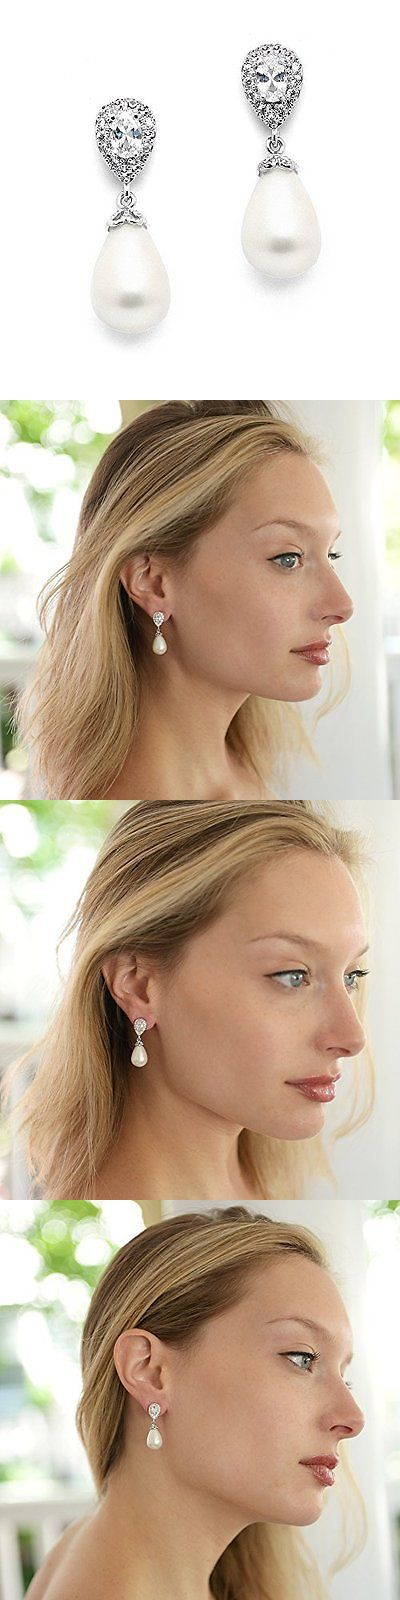 Bridal Jewelry 163552: Earrings Pear-Shaped Bold Soft Cream Pearl Drops Jewelry Bridal Valentines Day -> BUY IT NOW ONLY: $35.54 on eBay!